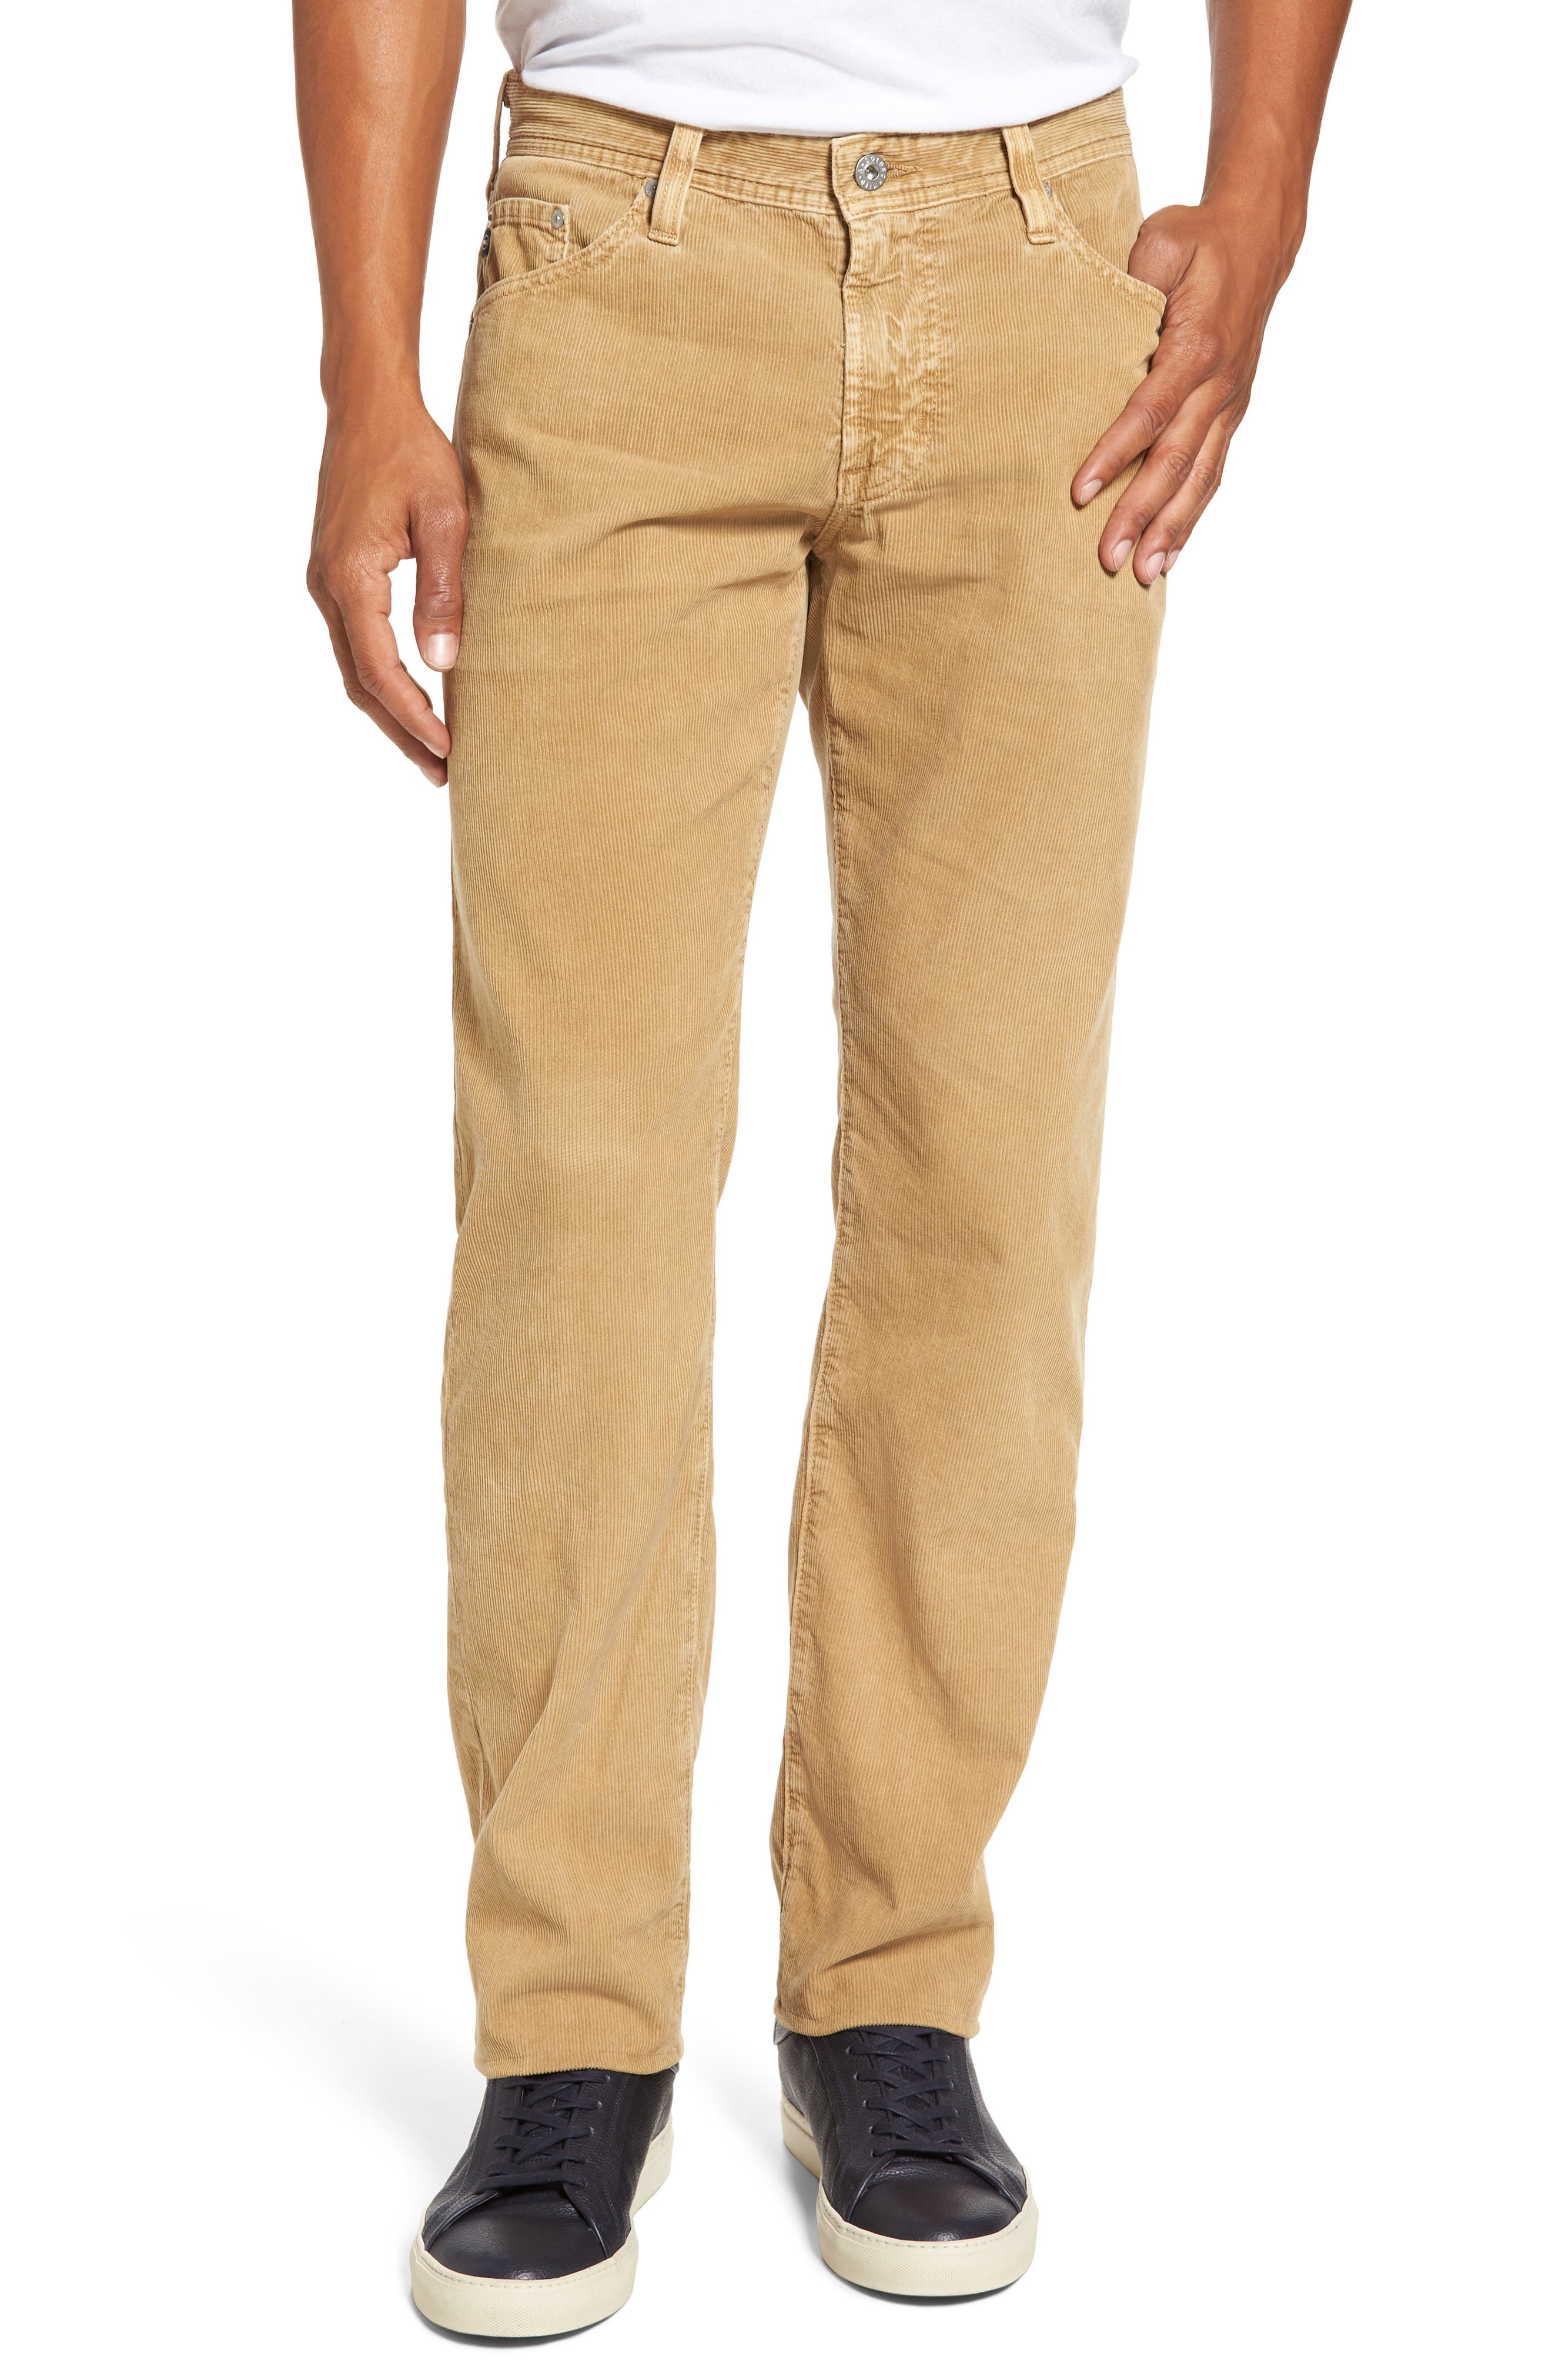 'Graduate' Tailored Straight Leg Corduroy Pants,                             Main thumbnail 2, color,